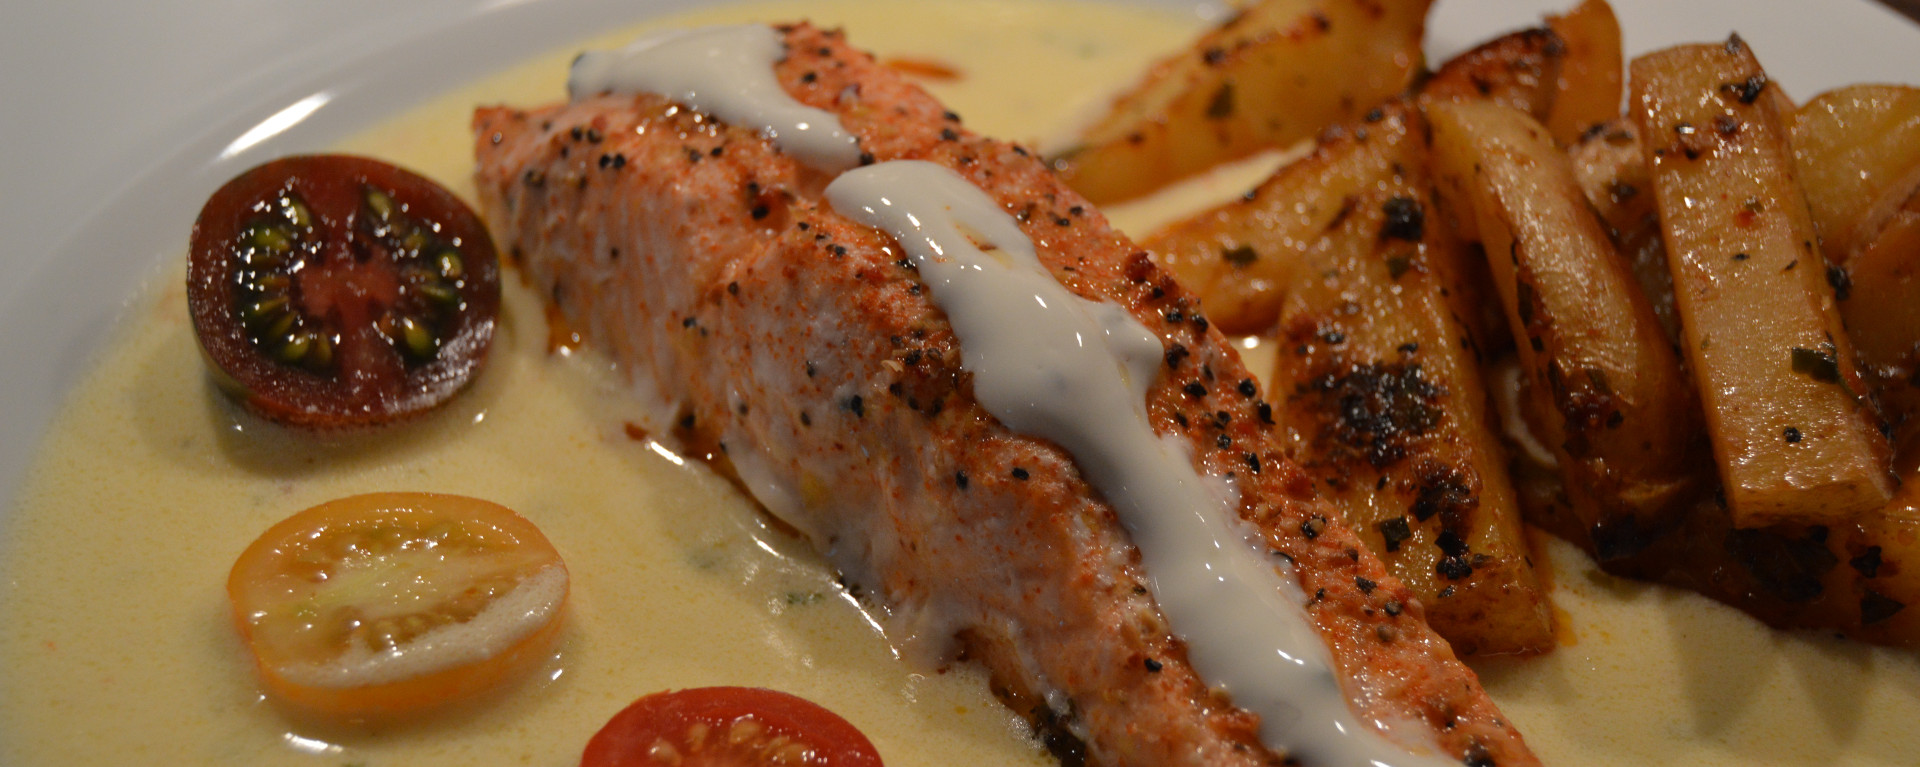 ChefNorway's Norwegian Salmon